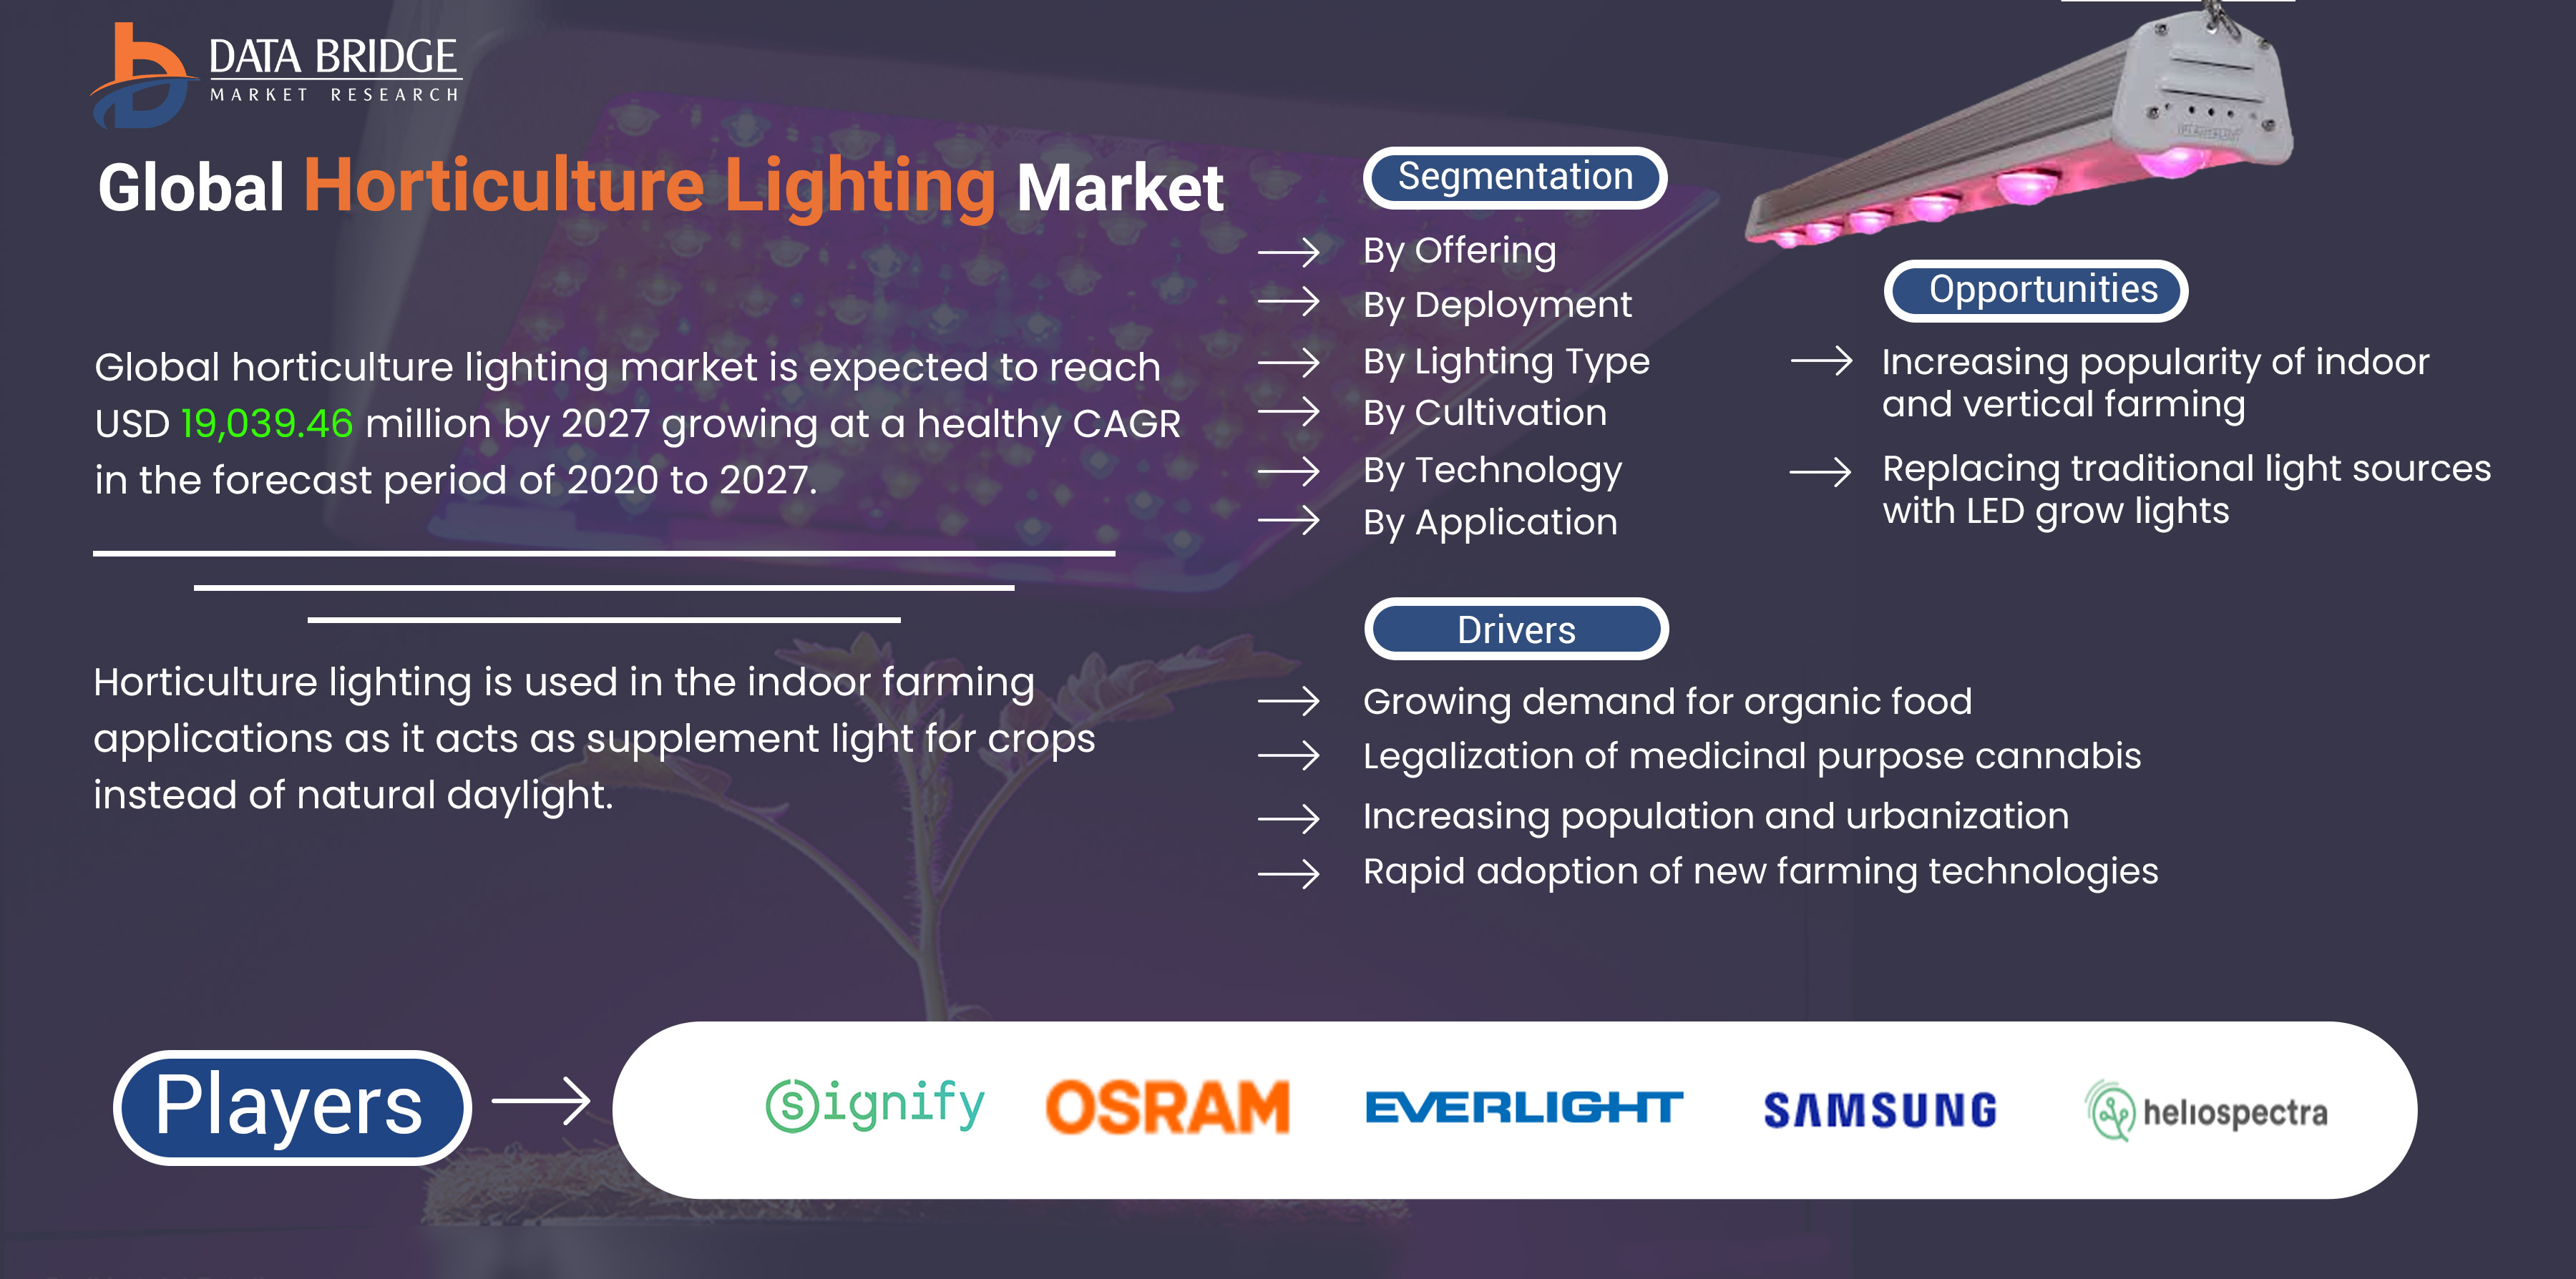 Horticulture Lighting Market